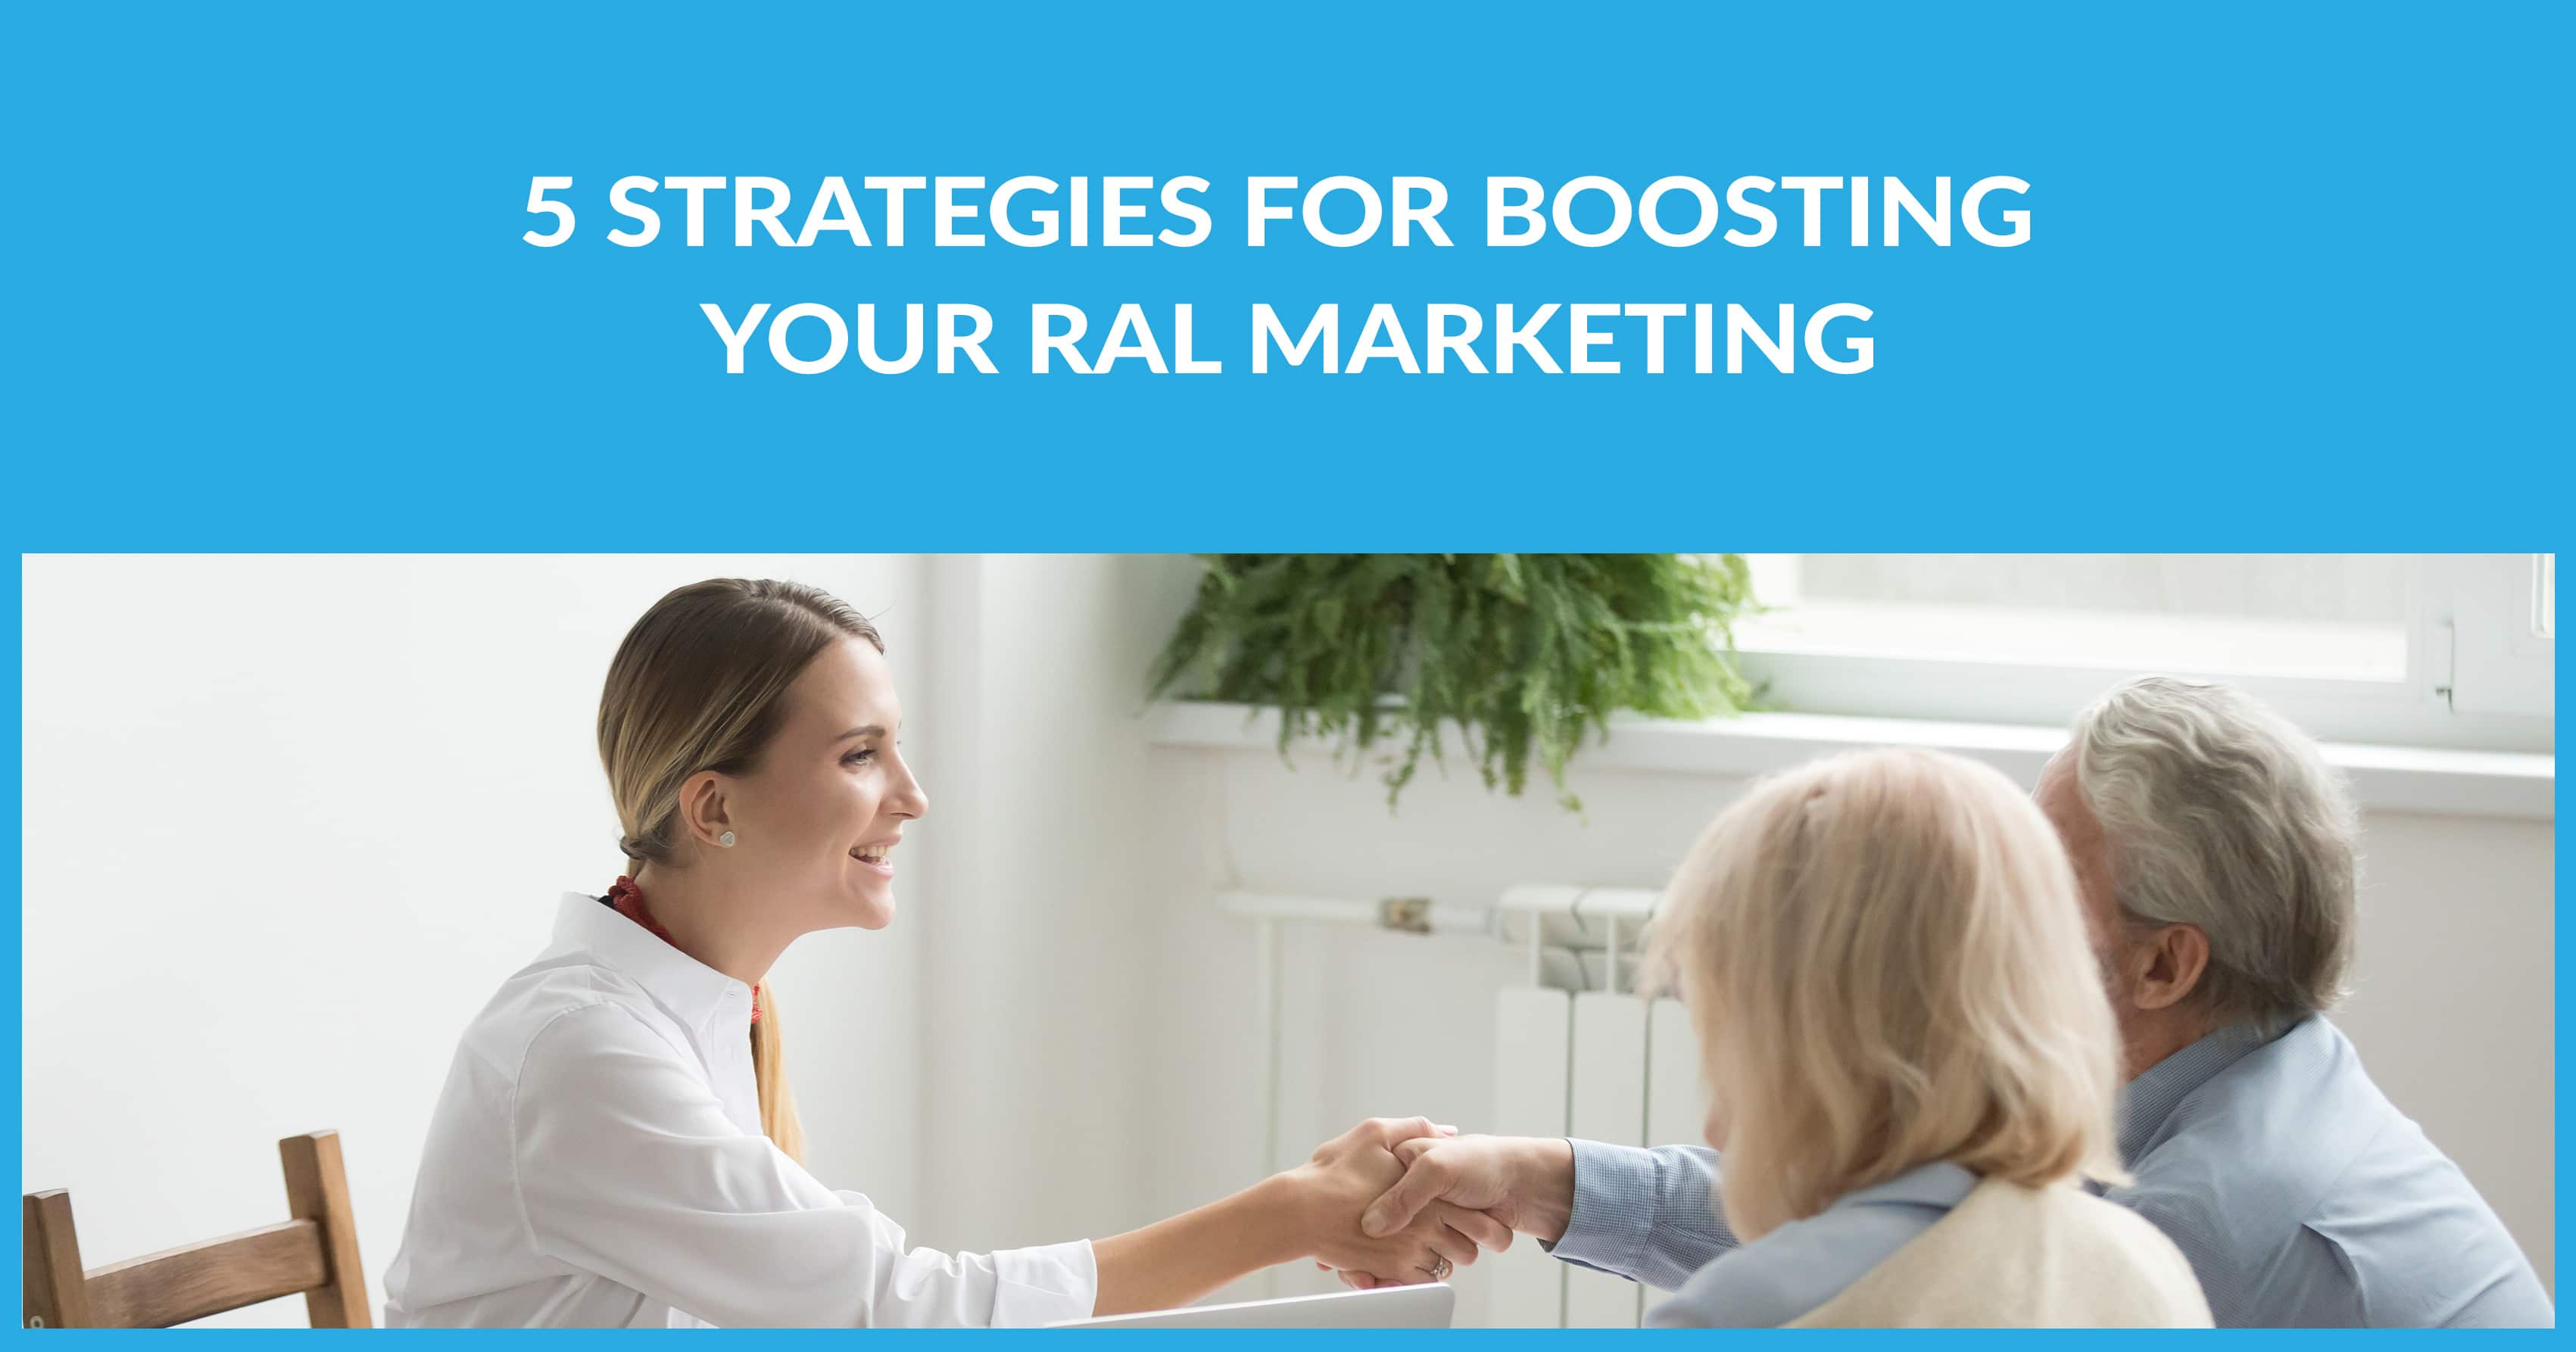 5 Strategies For Boosting Your RAL Marketing